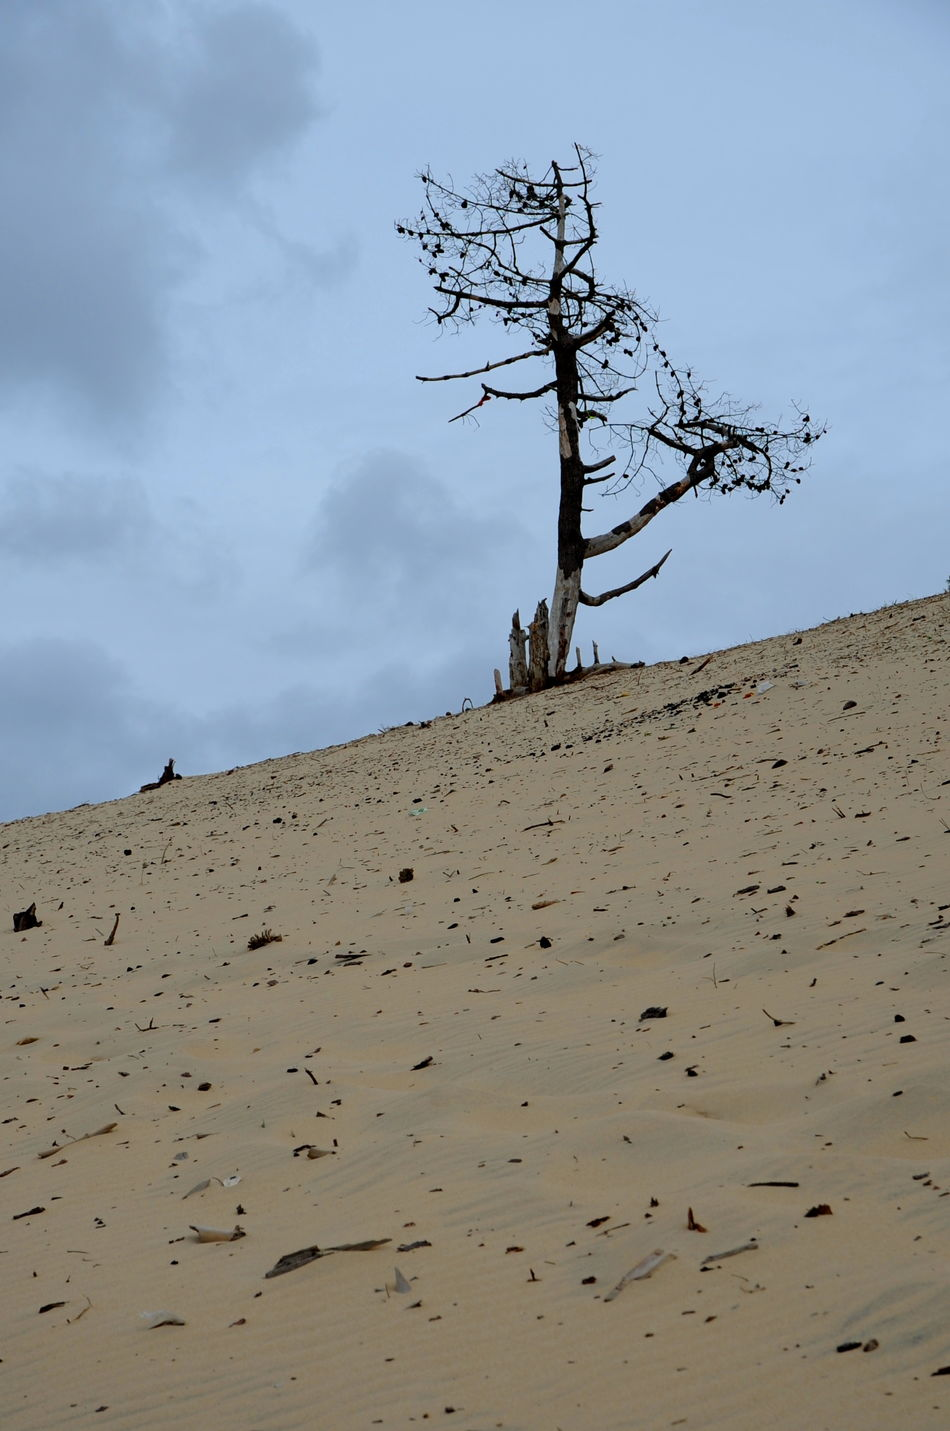 Animal Themes Arid Climate Beauty In Nature Day Dune Du Pyla Dune Of Pilat Landscape Nature No People Outdoors Sand Sand Dune Scenics Sky Tranquil Scene Tranquility Tree